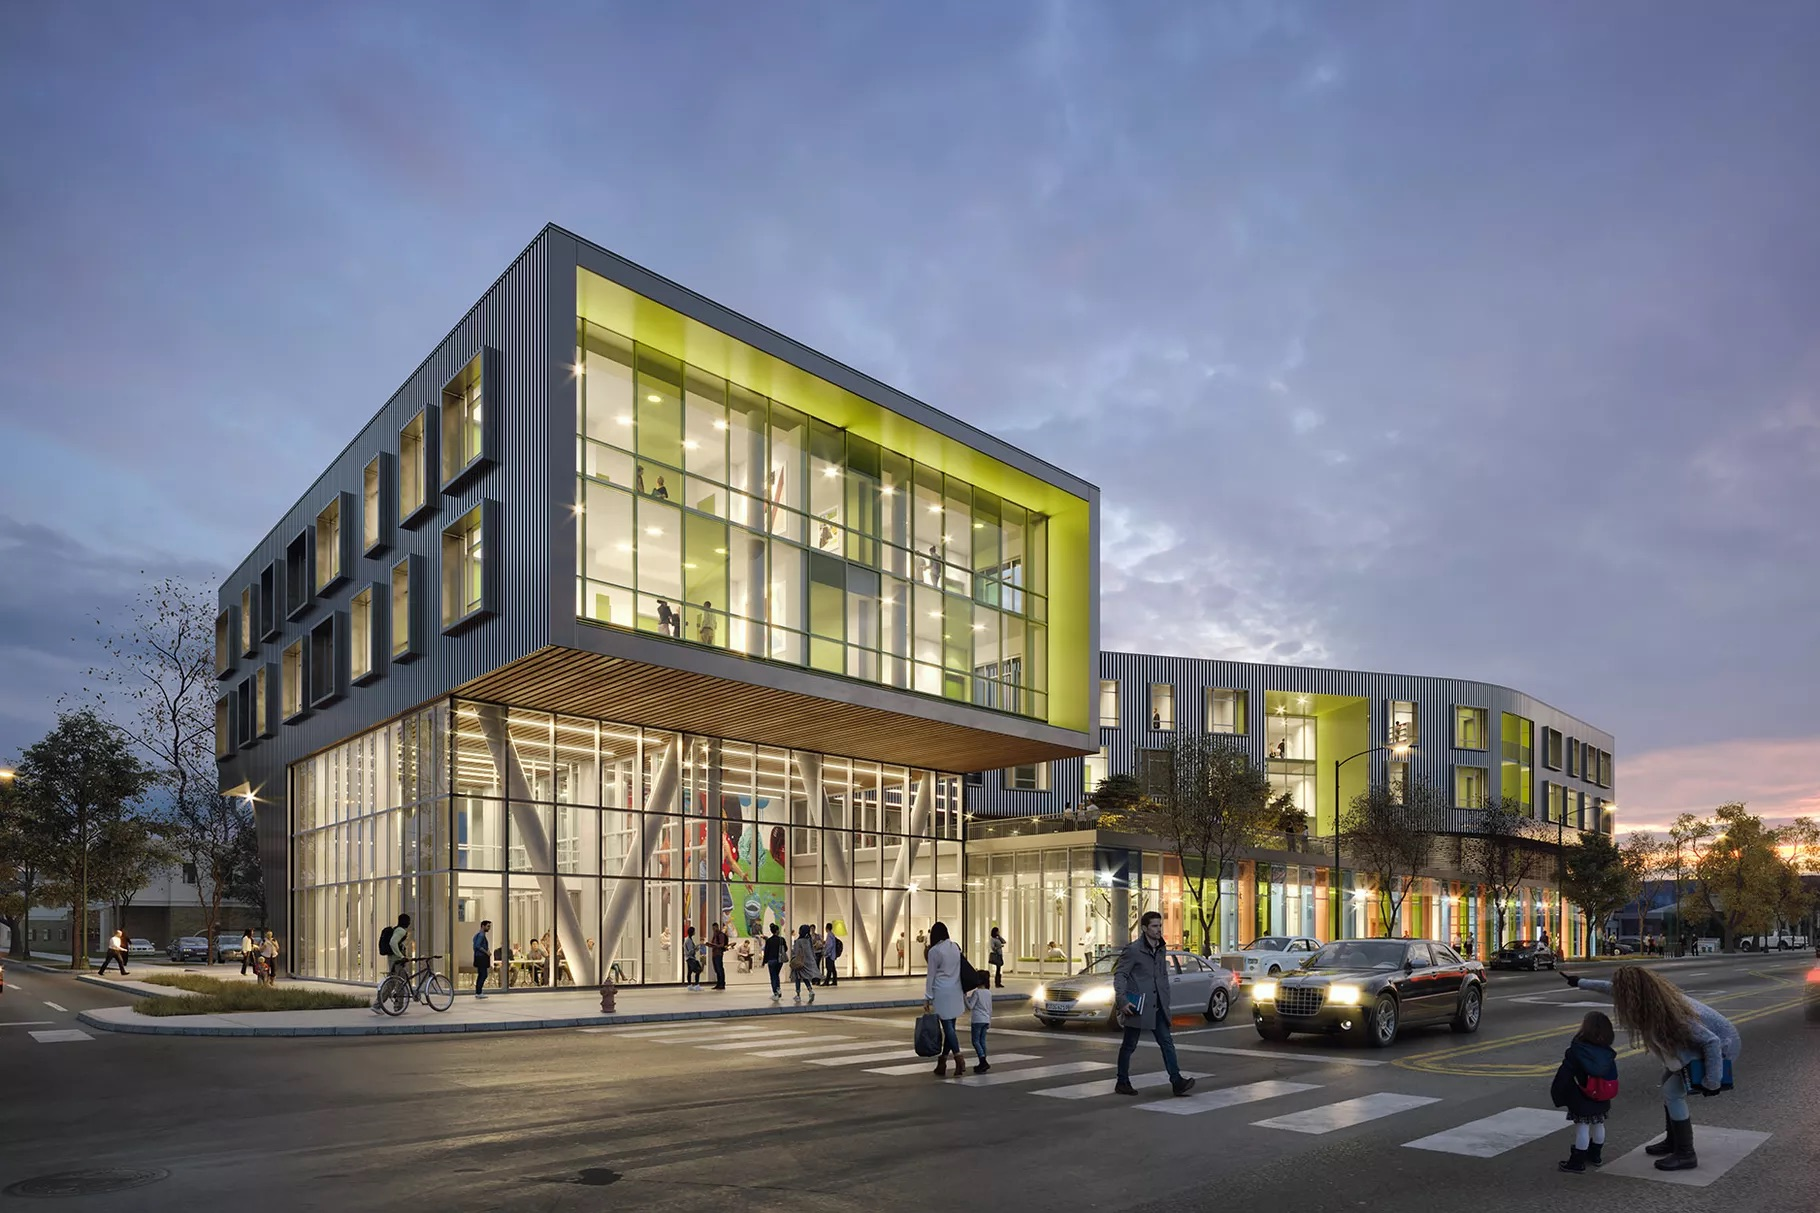 24 Million Permit Issued For New Northtown Library